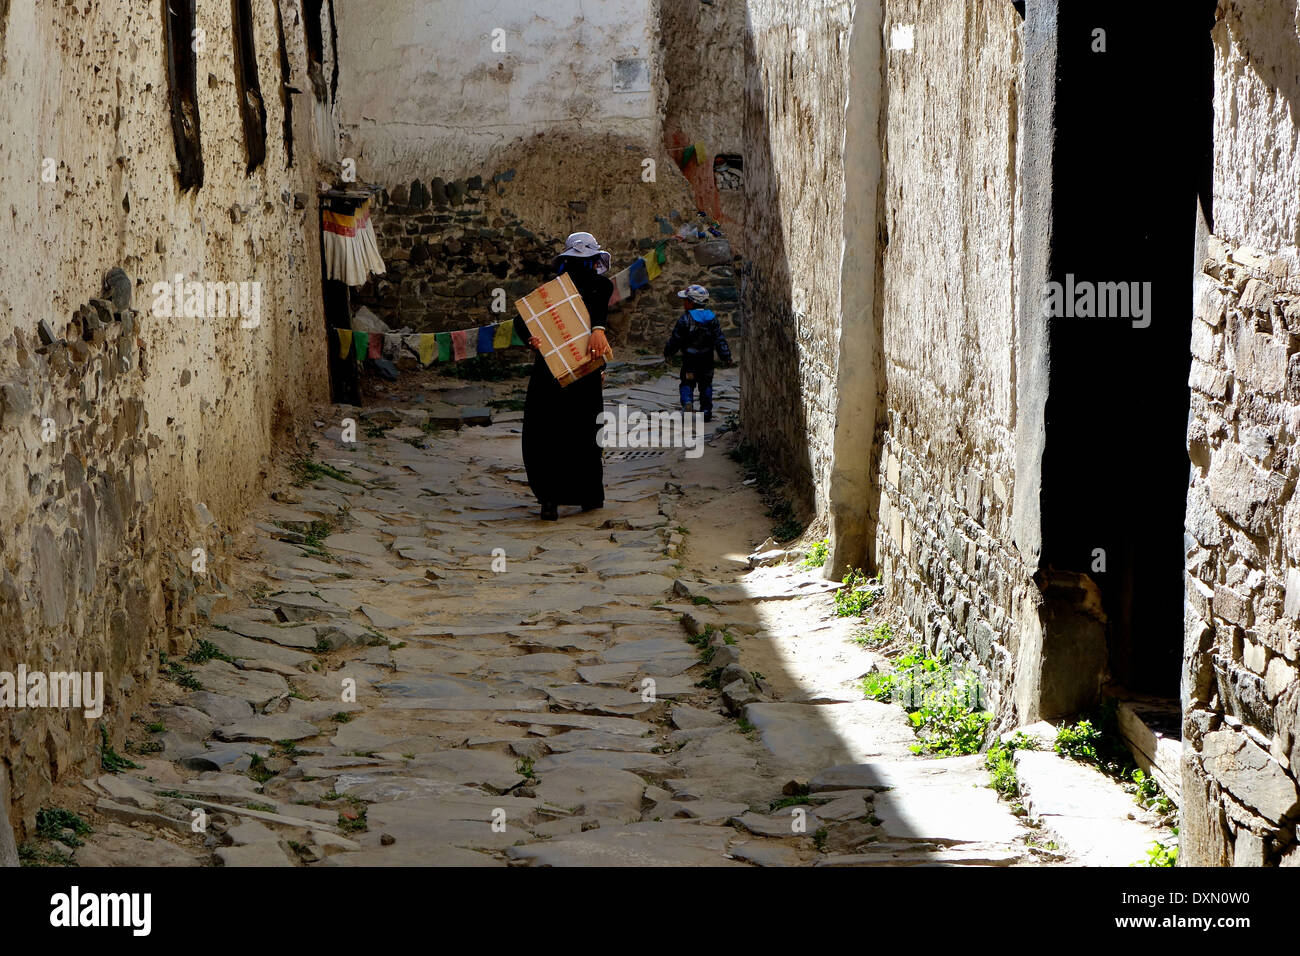 Tibetan People,walking  in old street of Lhasa,Candid street photography,Life of Buddhist devotion - Stock Image